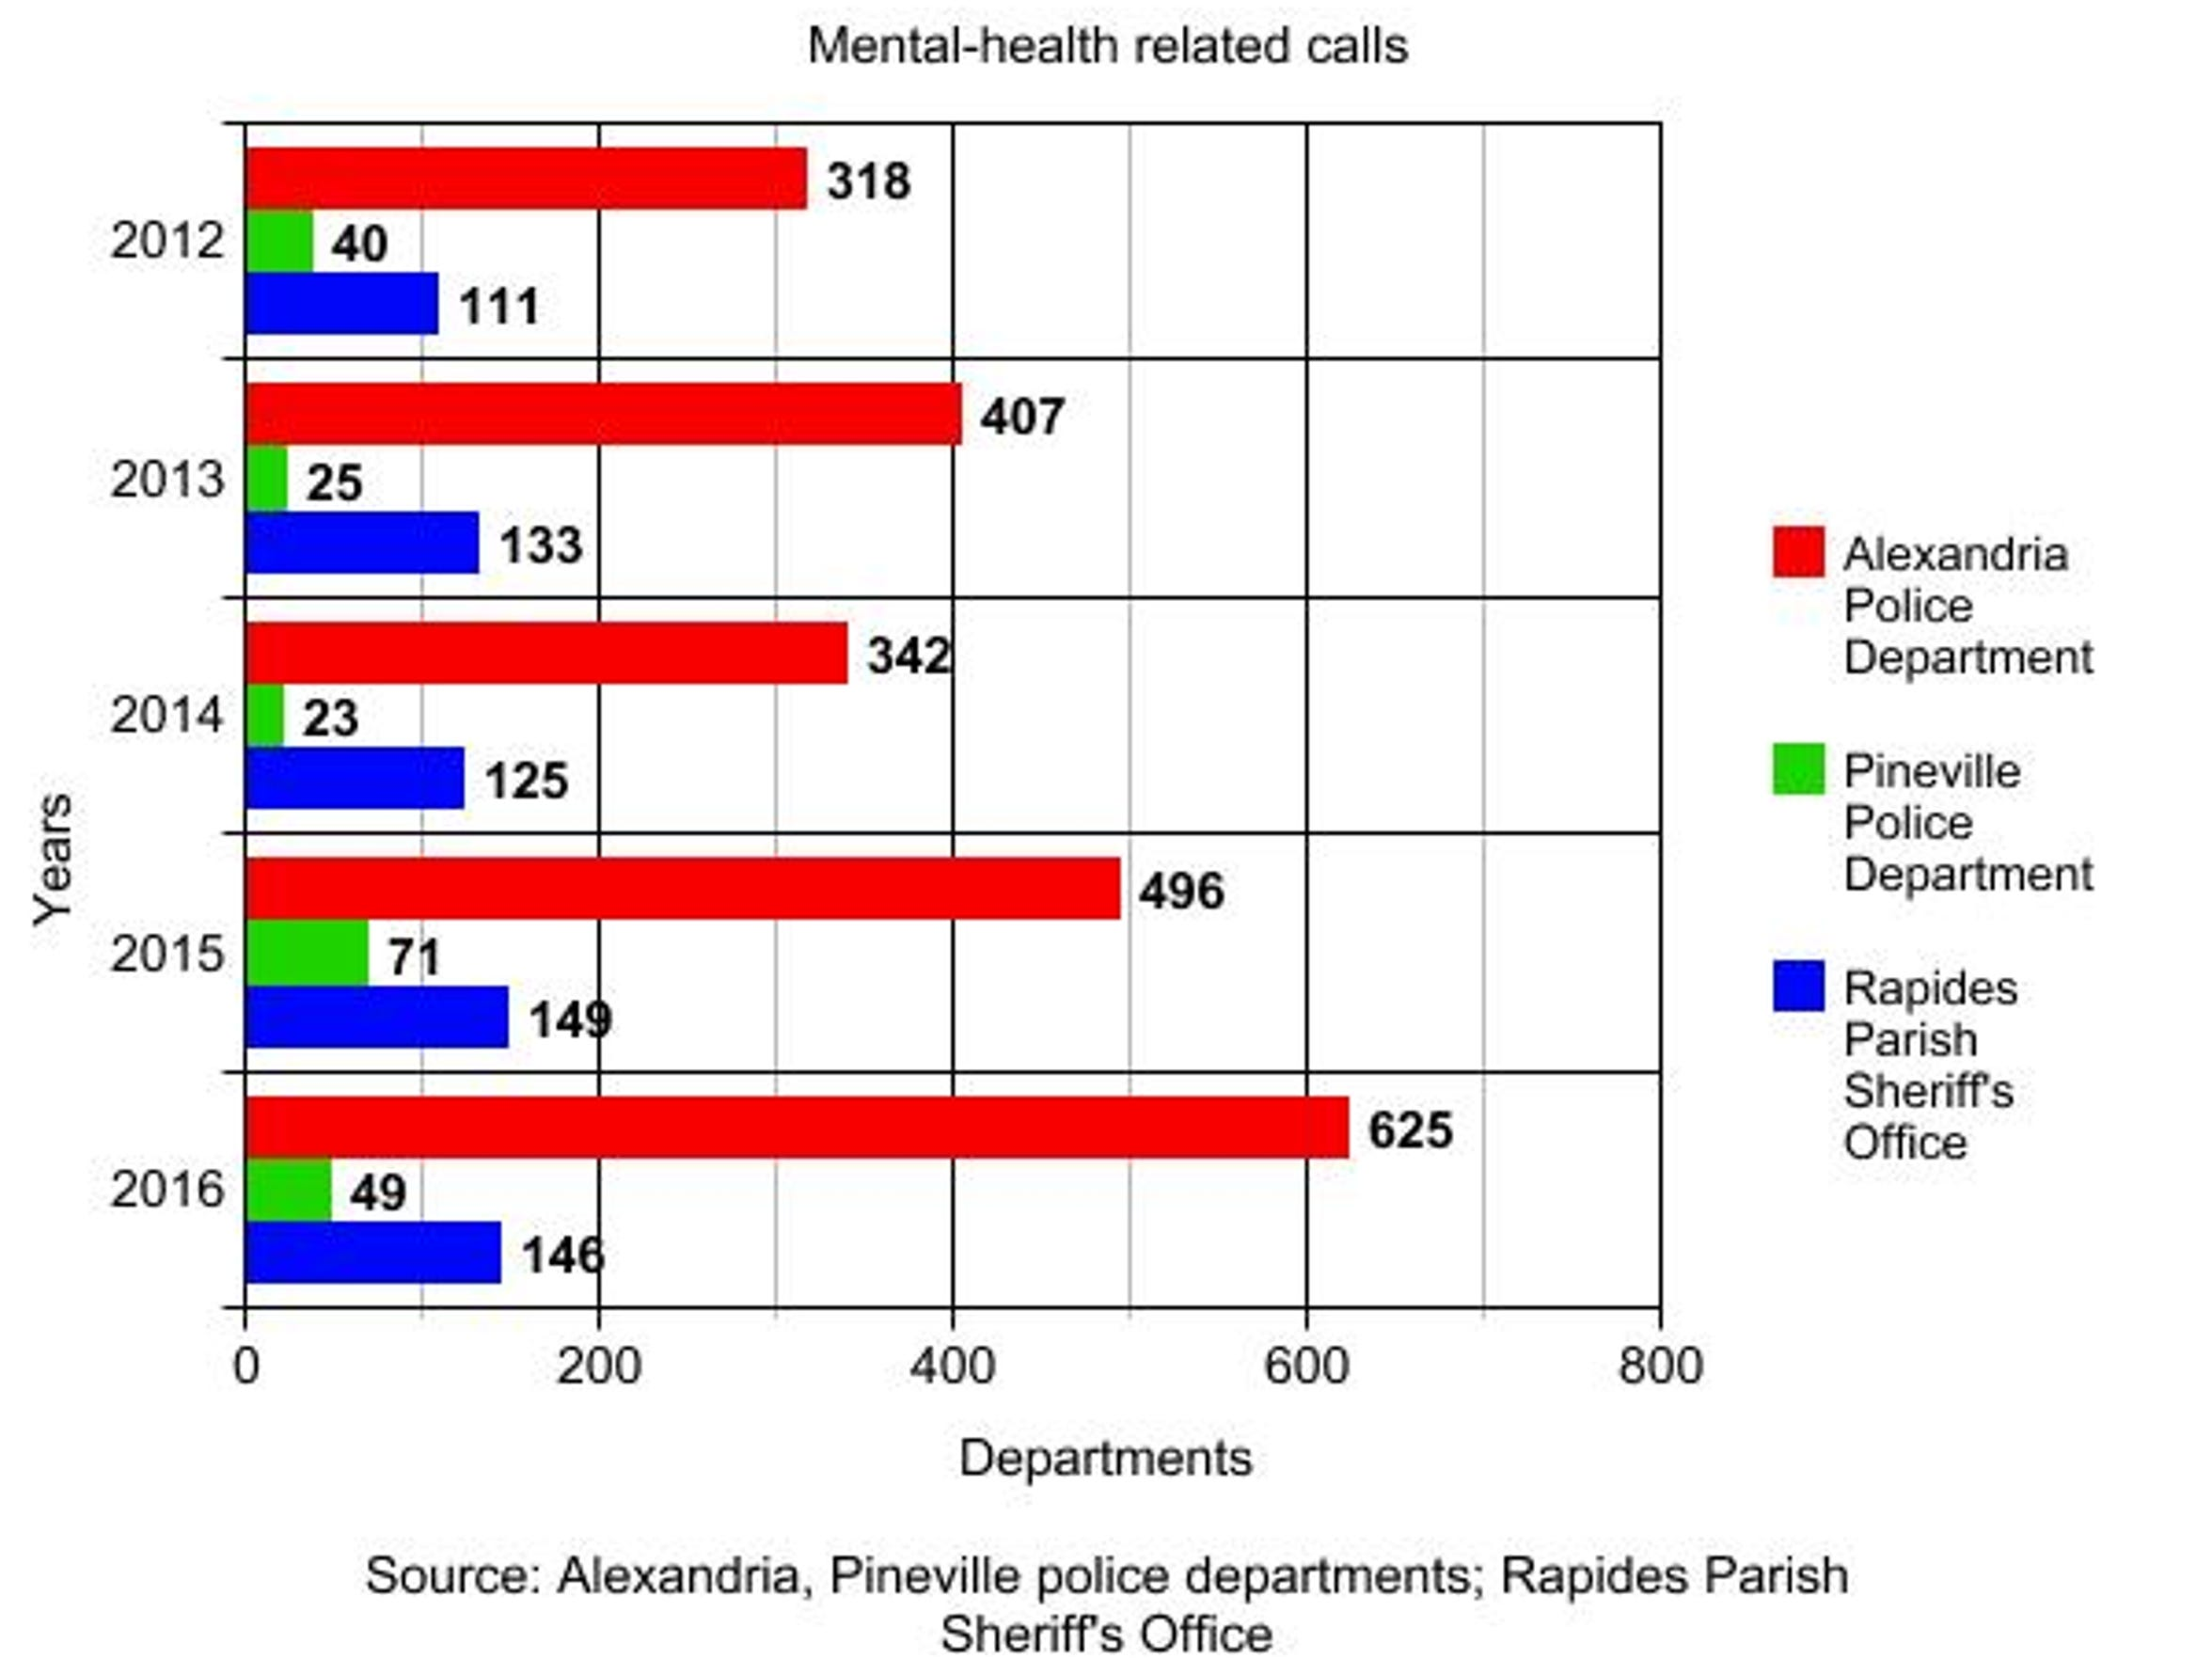 Number of mental-health related calls over 2012-16.